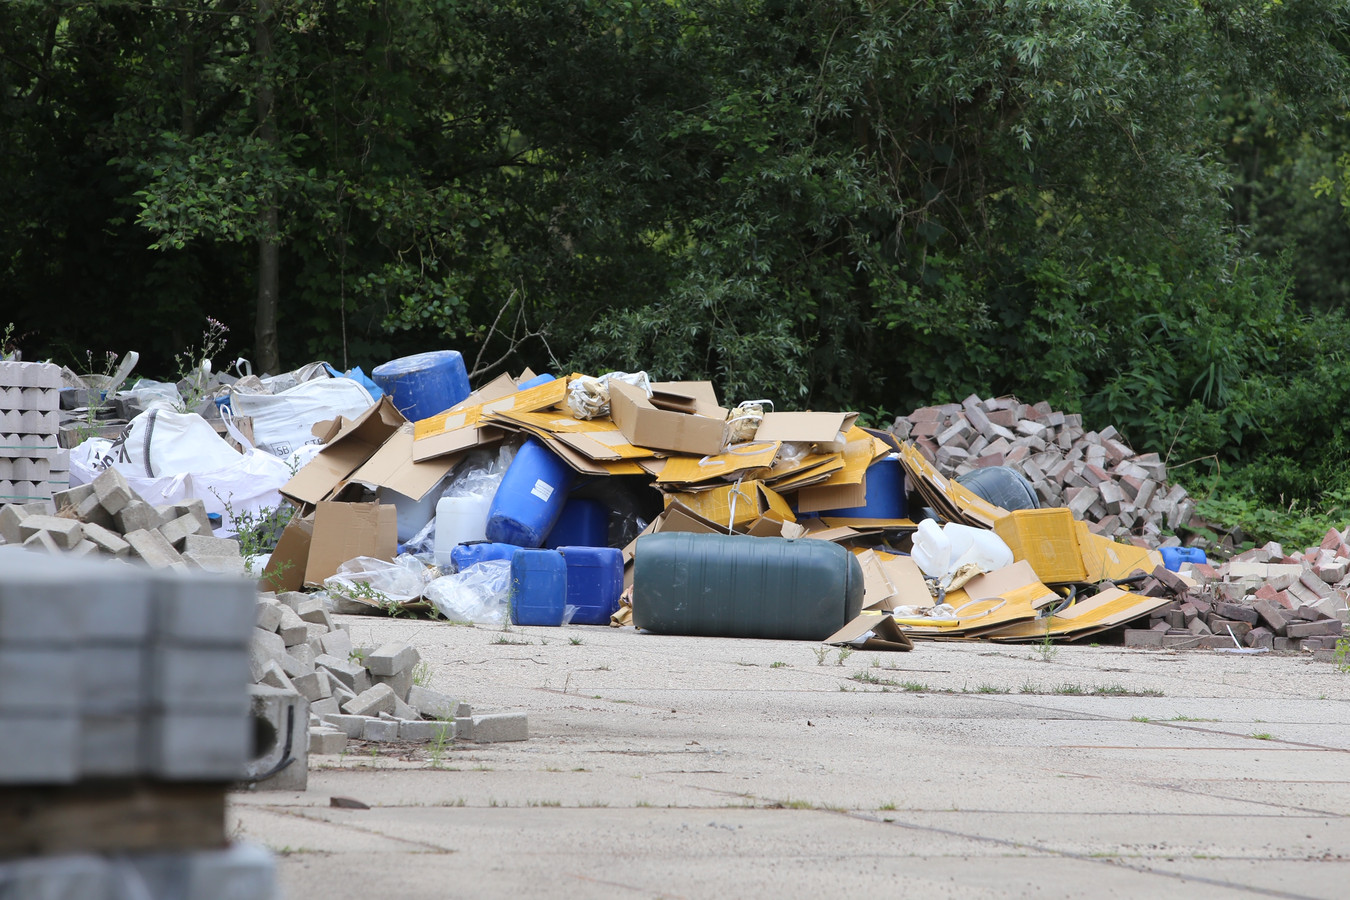 Drugsdumping in Liempde.